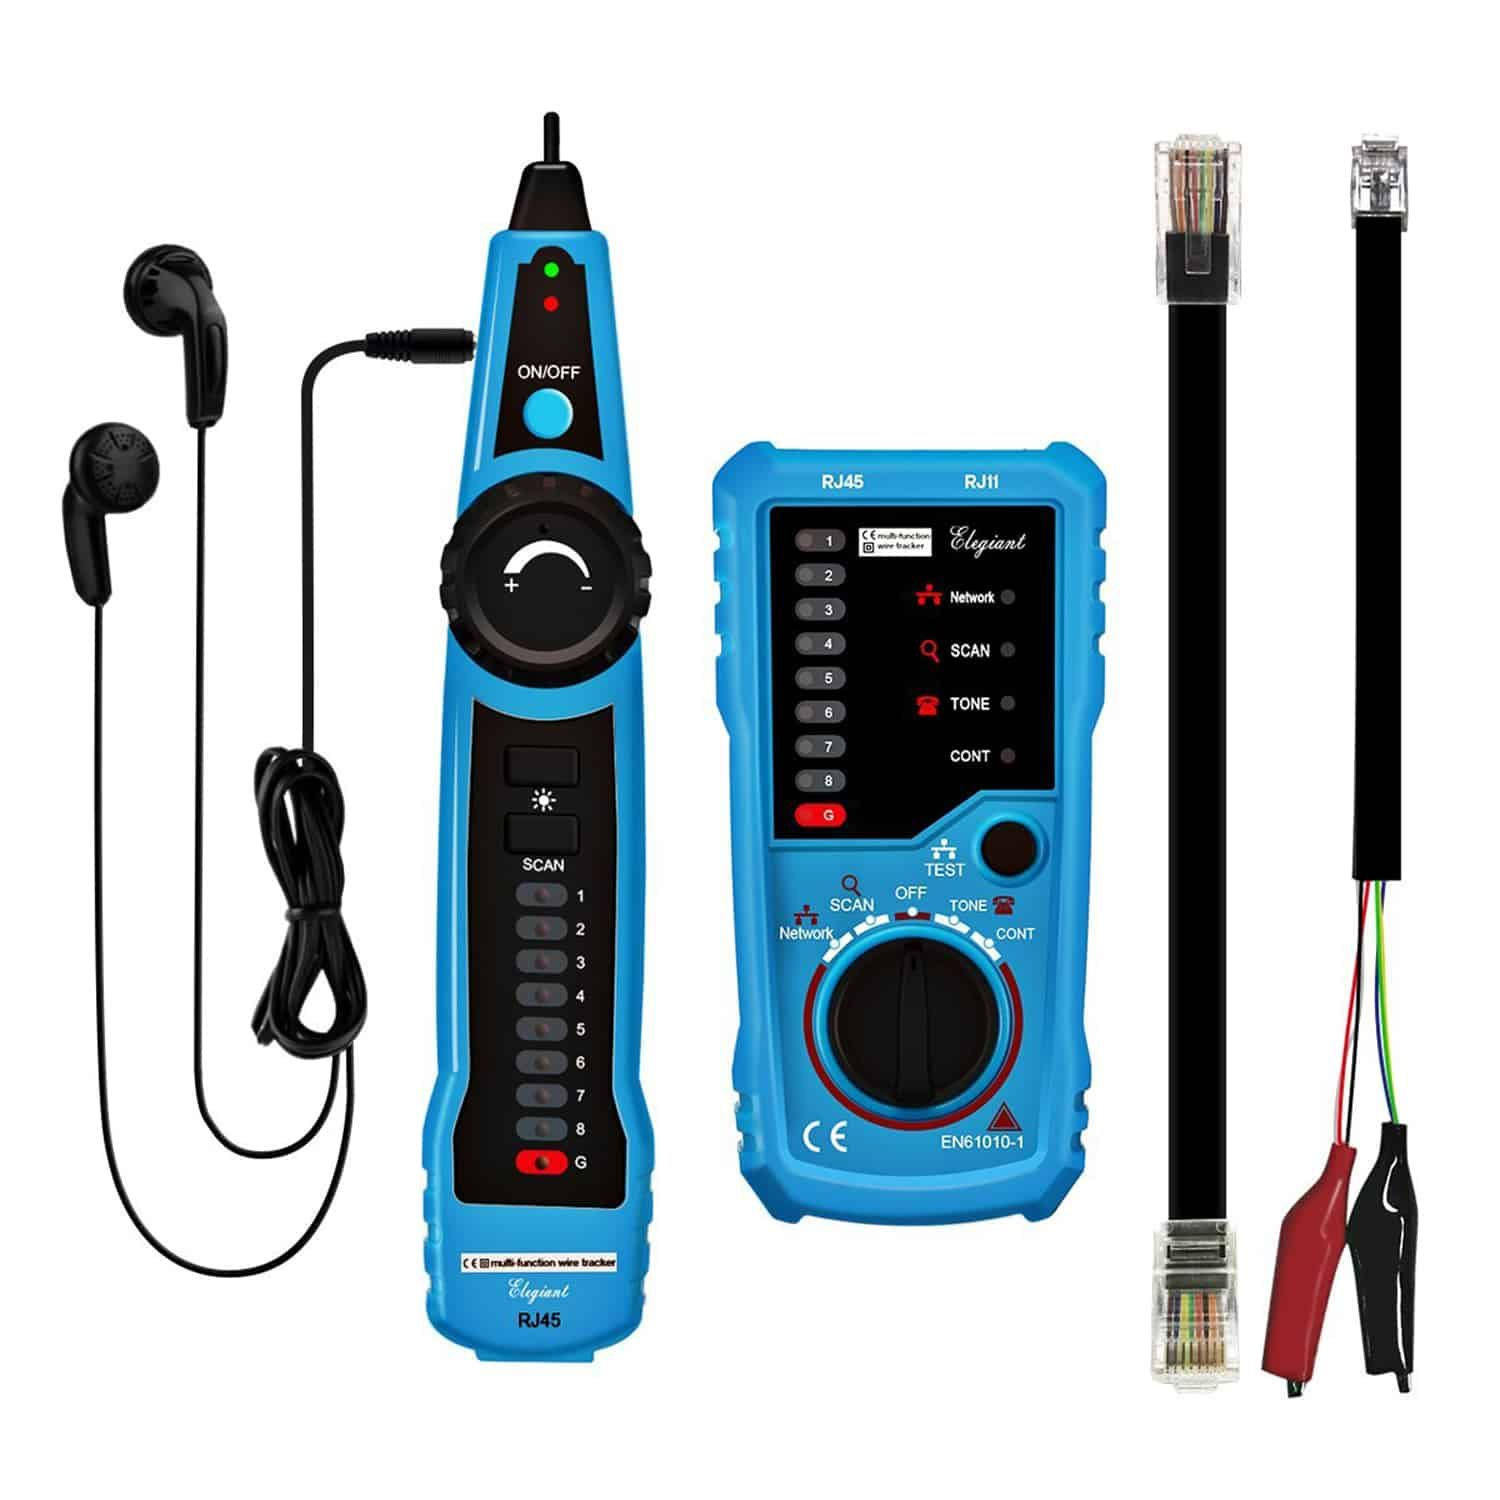 Image result for network cable testers